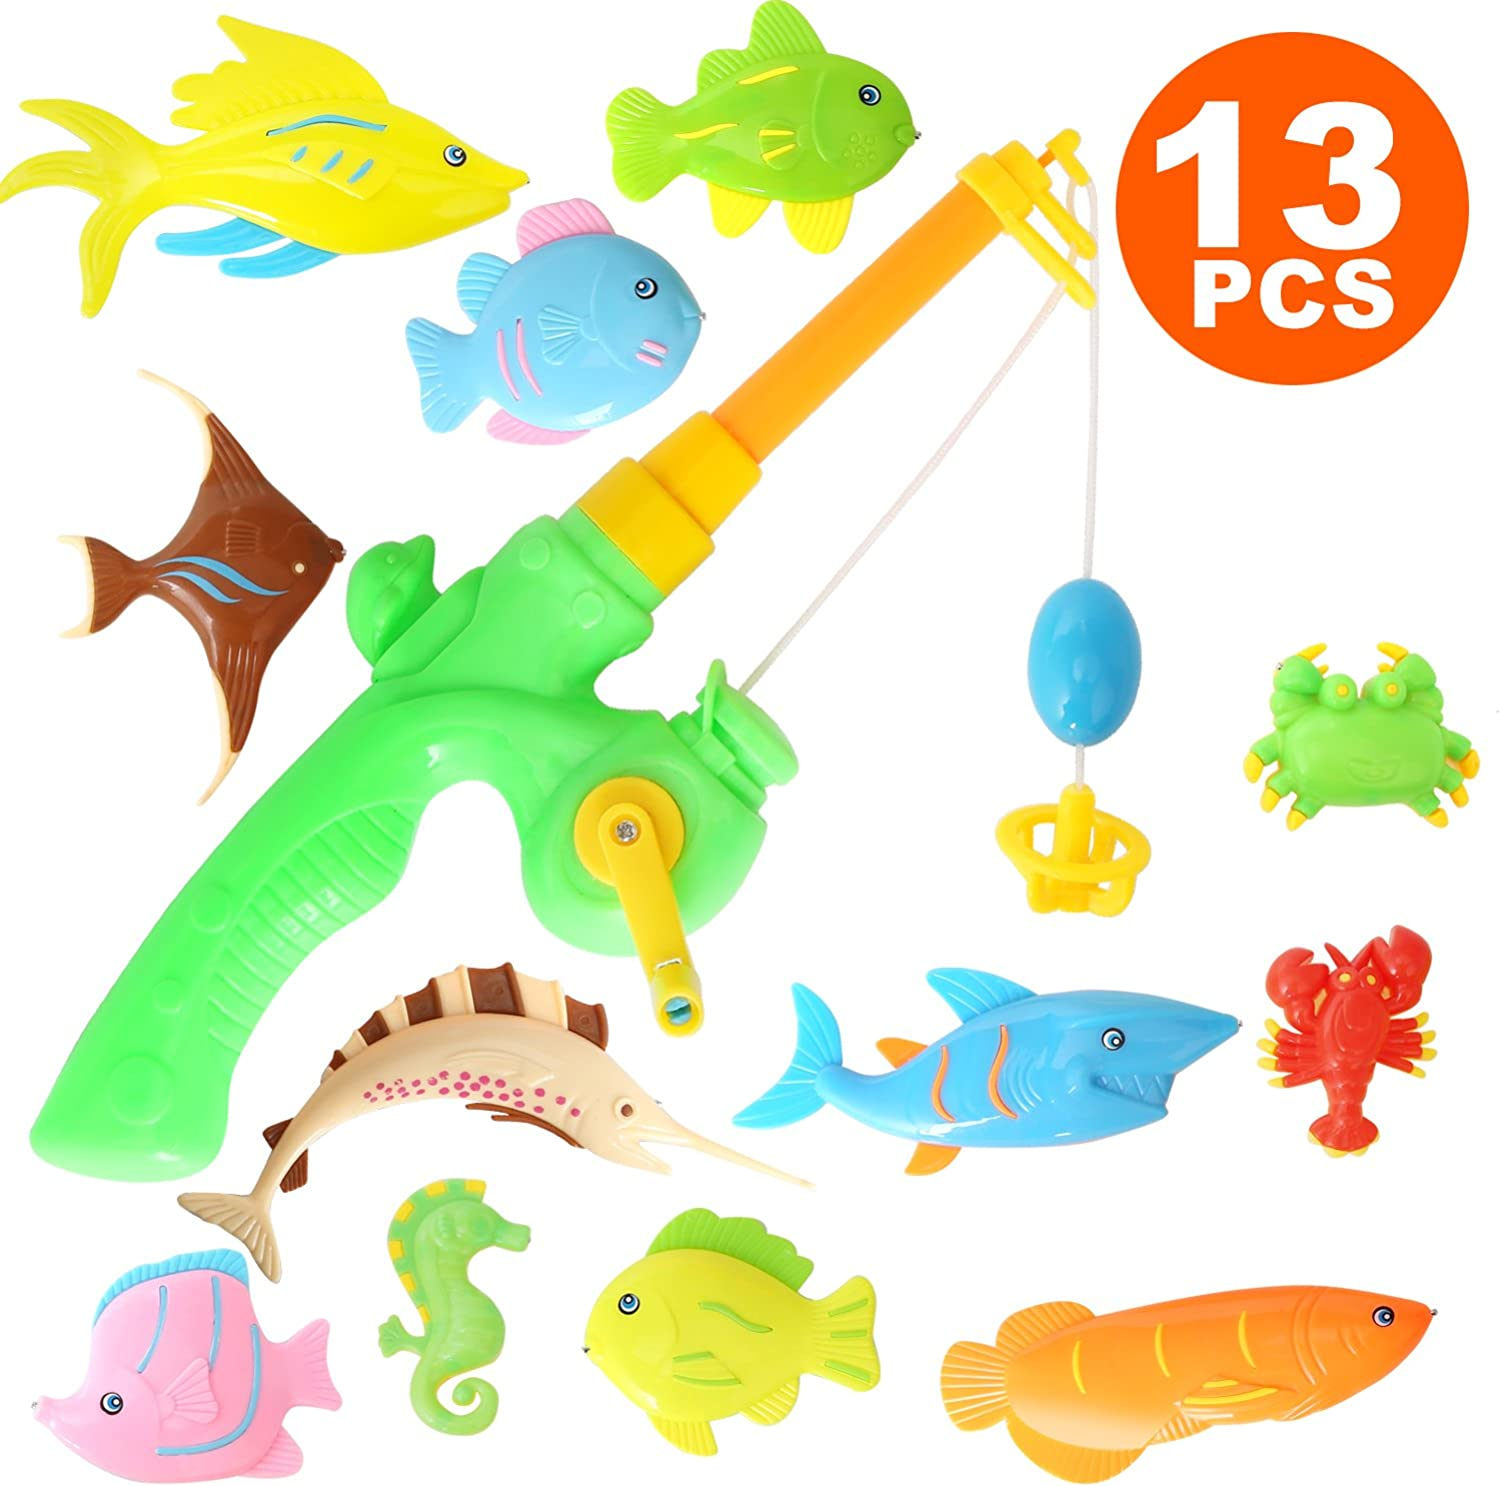 Be The First to Start a sea seen Your Fishing kun Fishing Game Fish 12 Animals Fishing